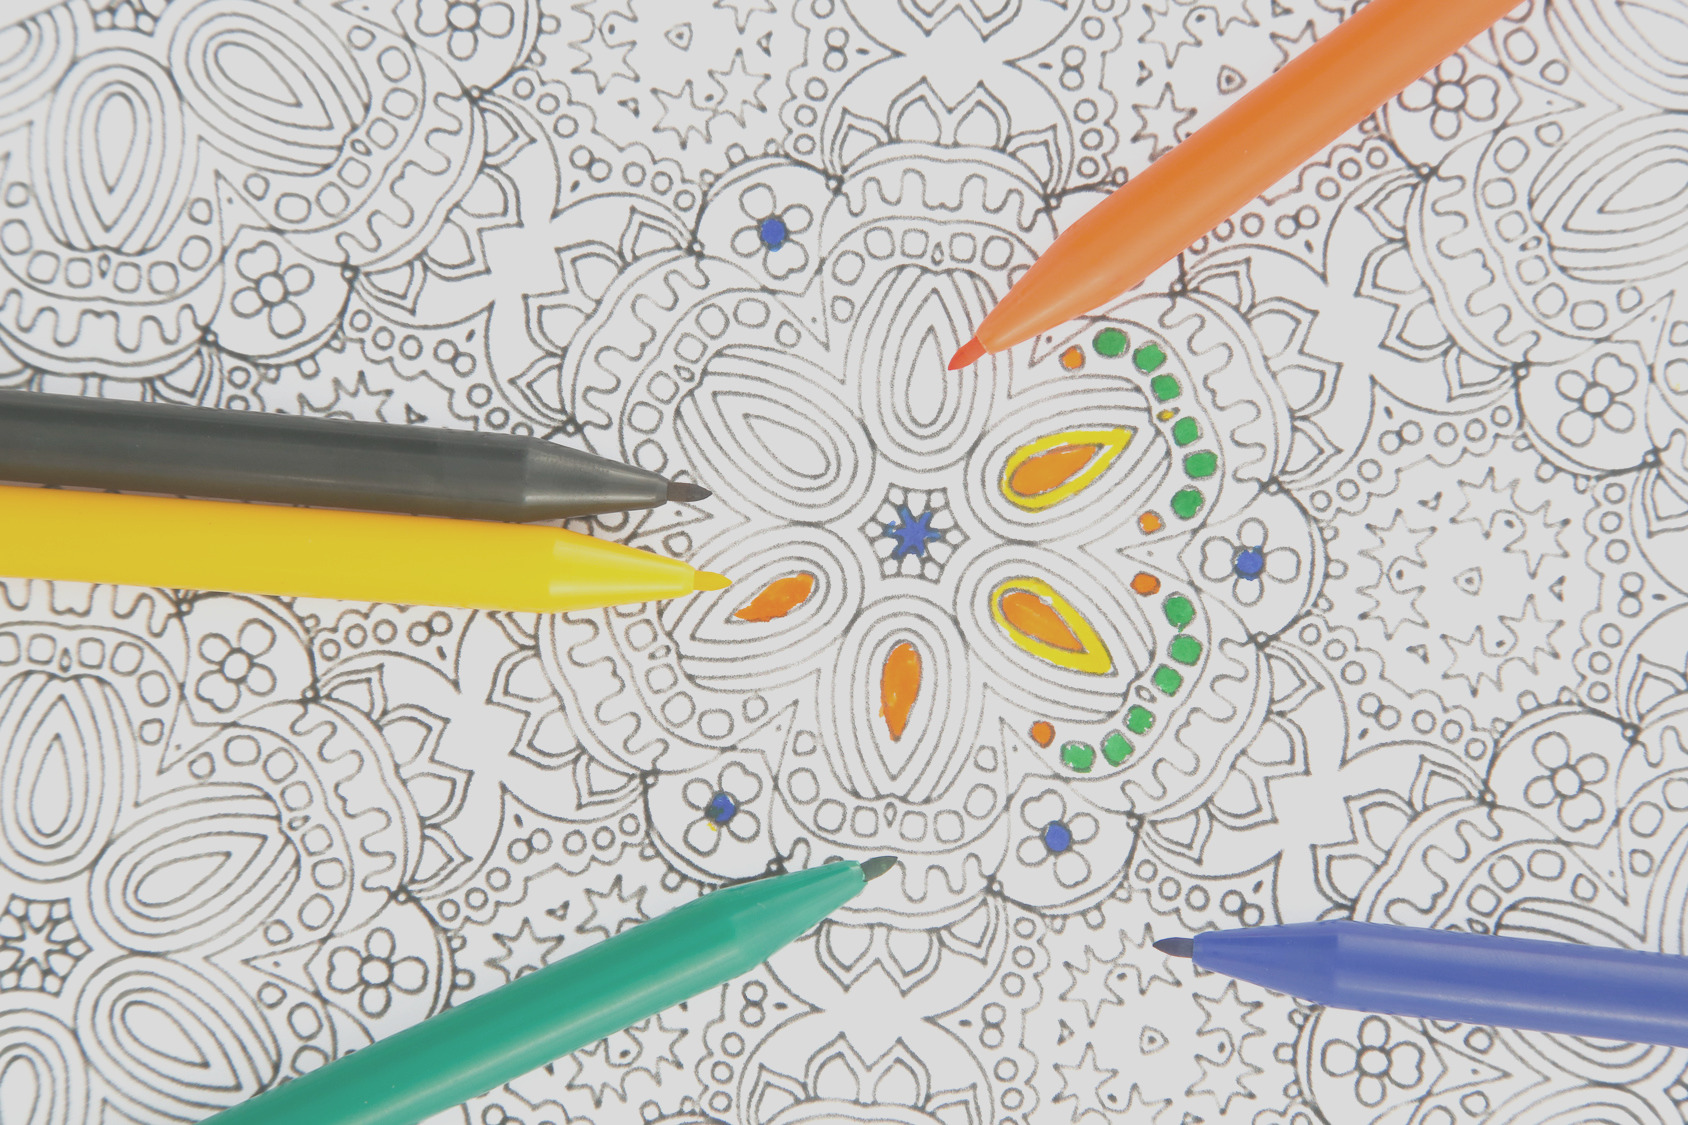 copyright law and adult coloring books